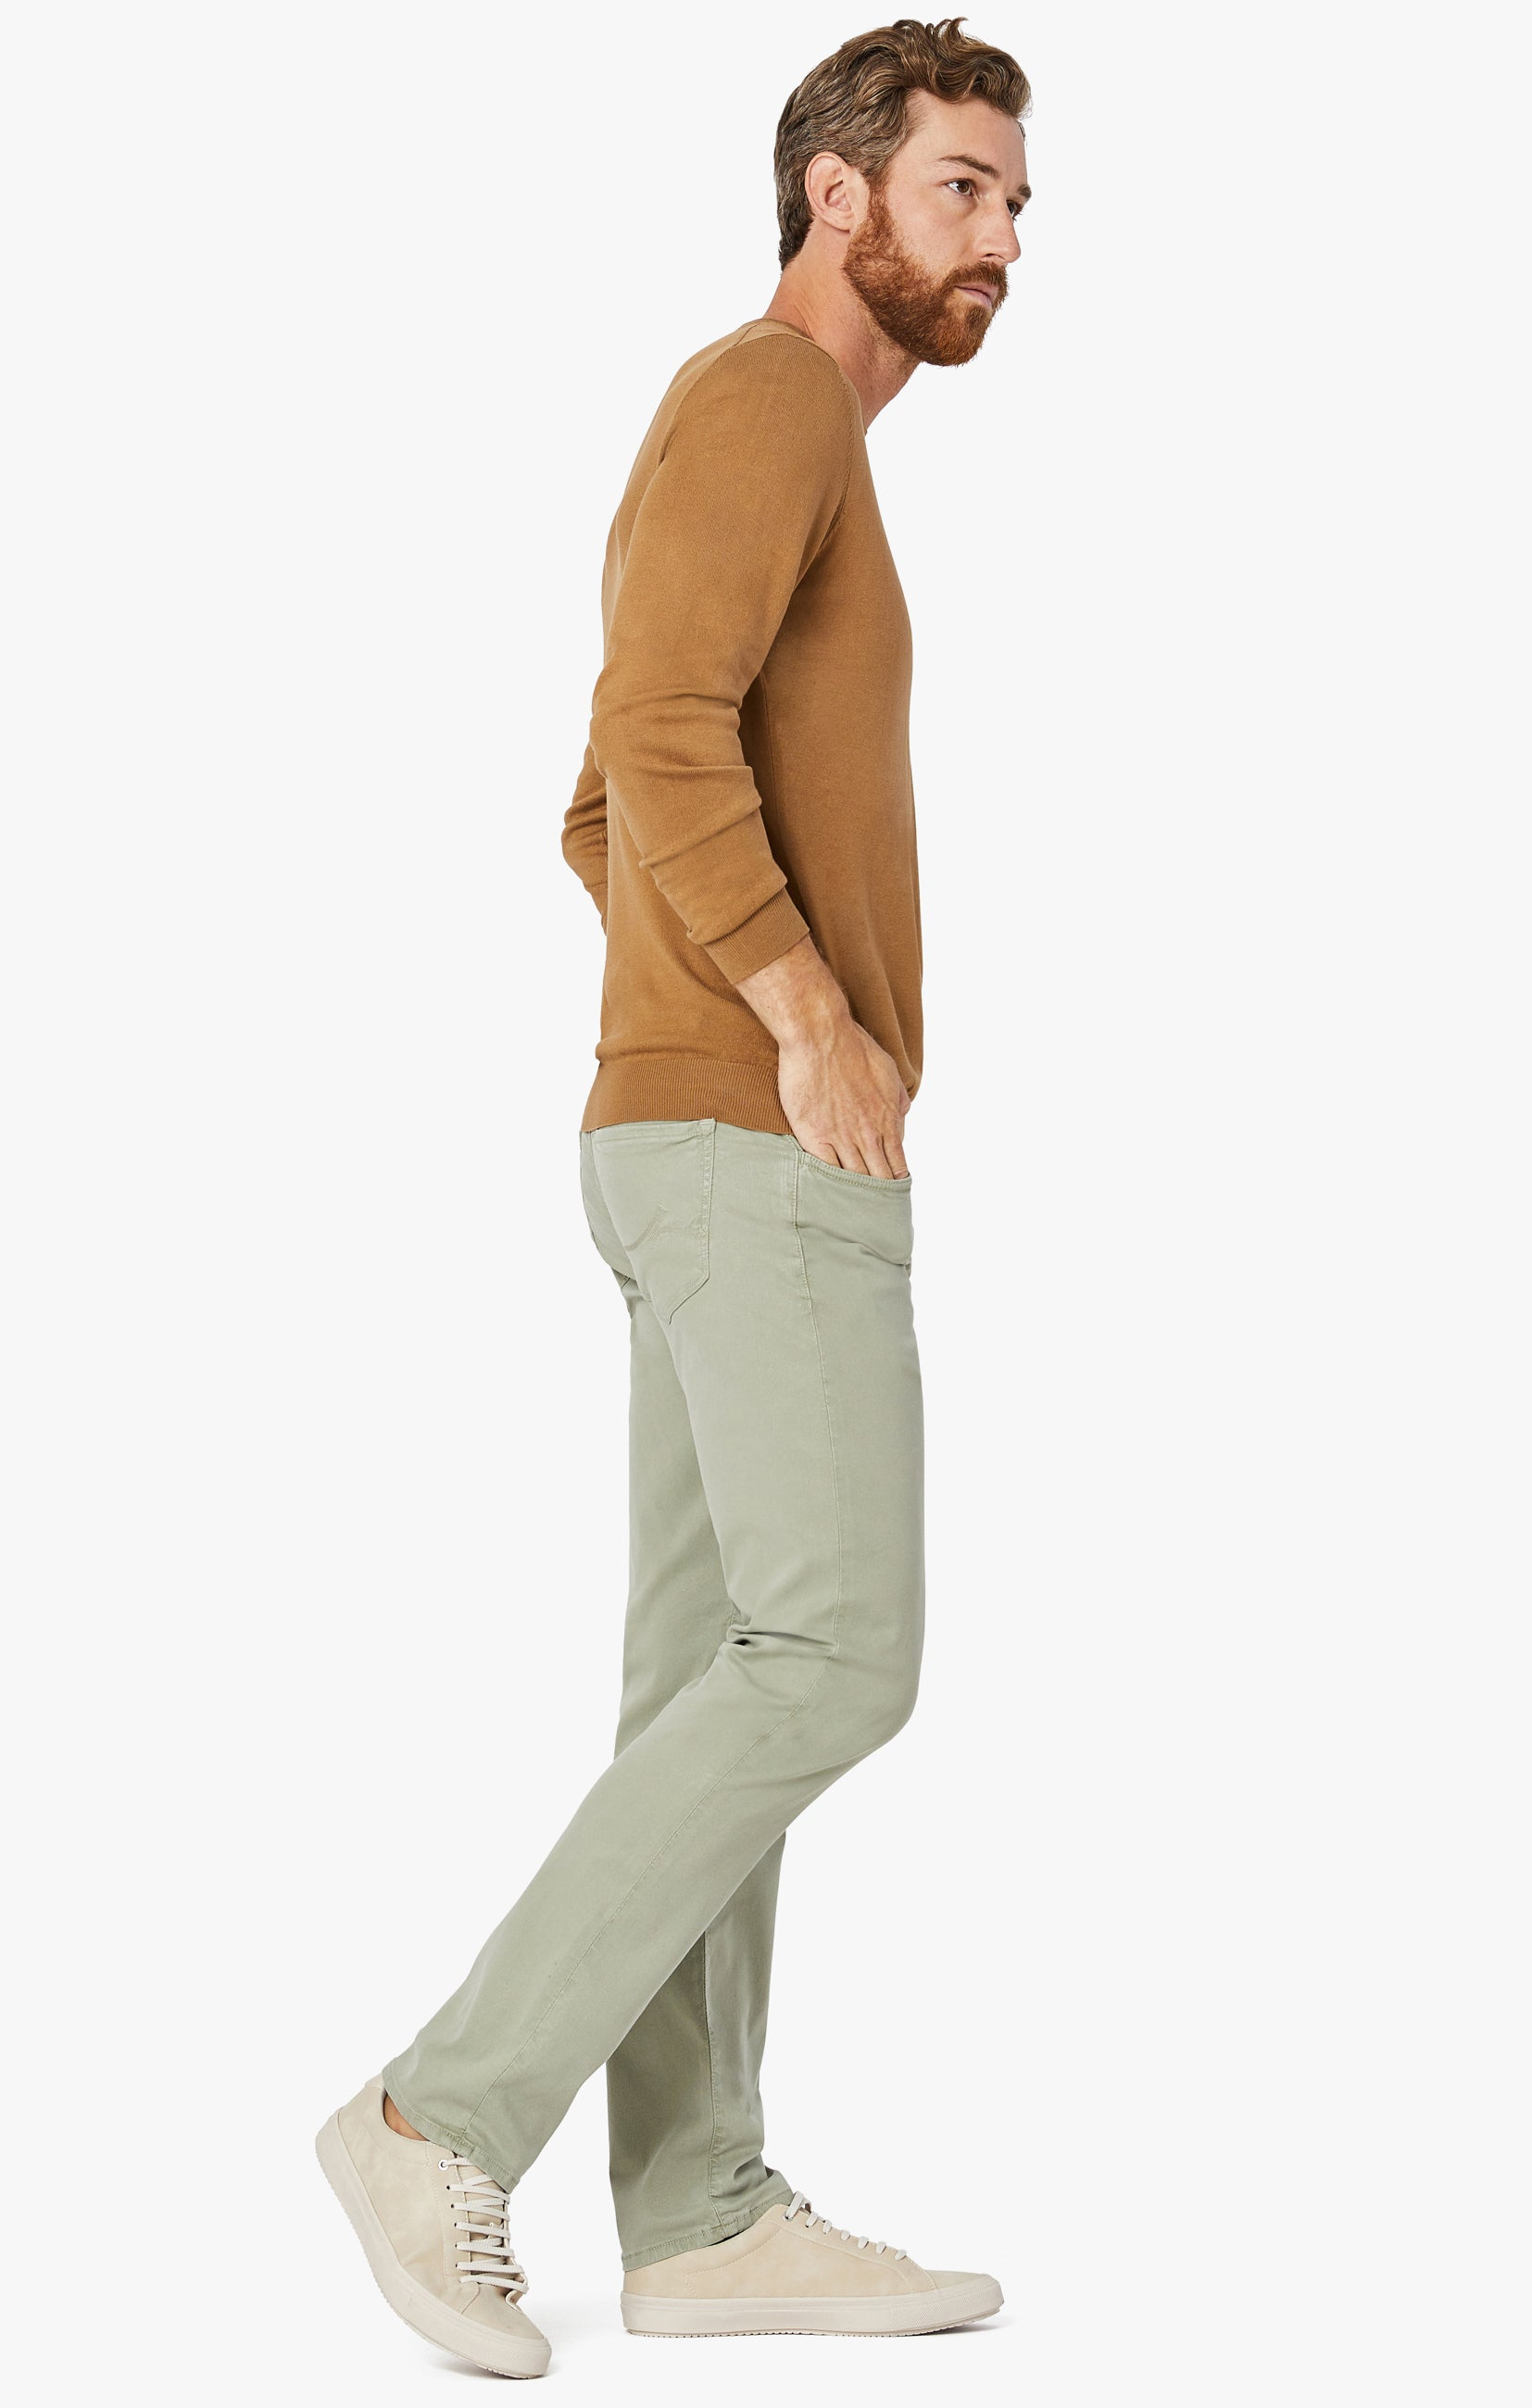 Courage Straight Leg Pants in Sage Soft Touch Image 4